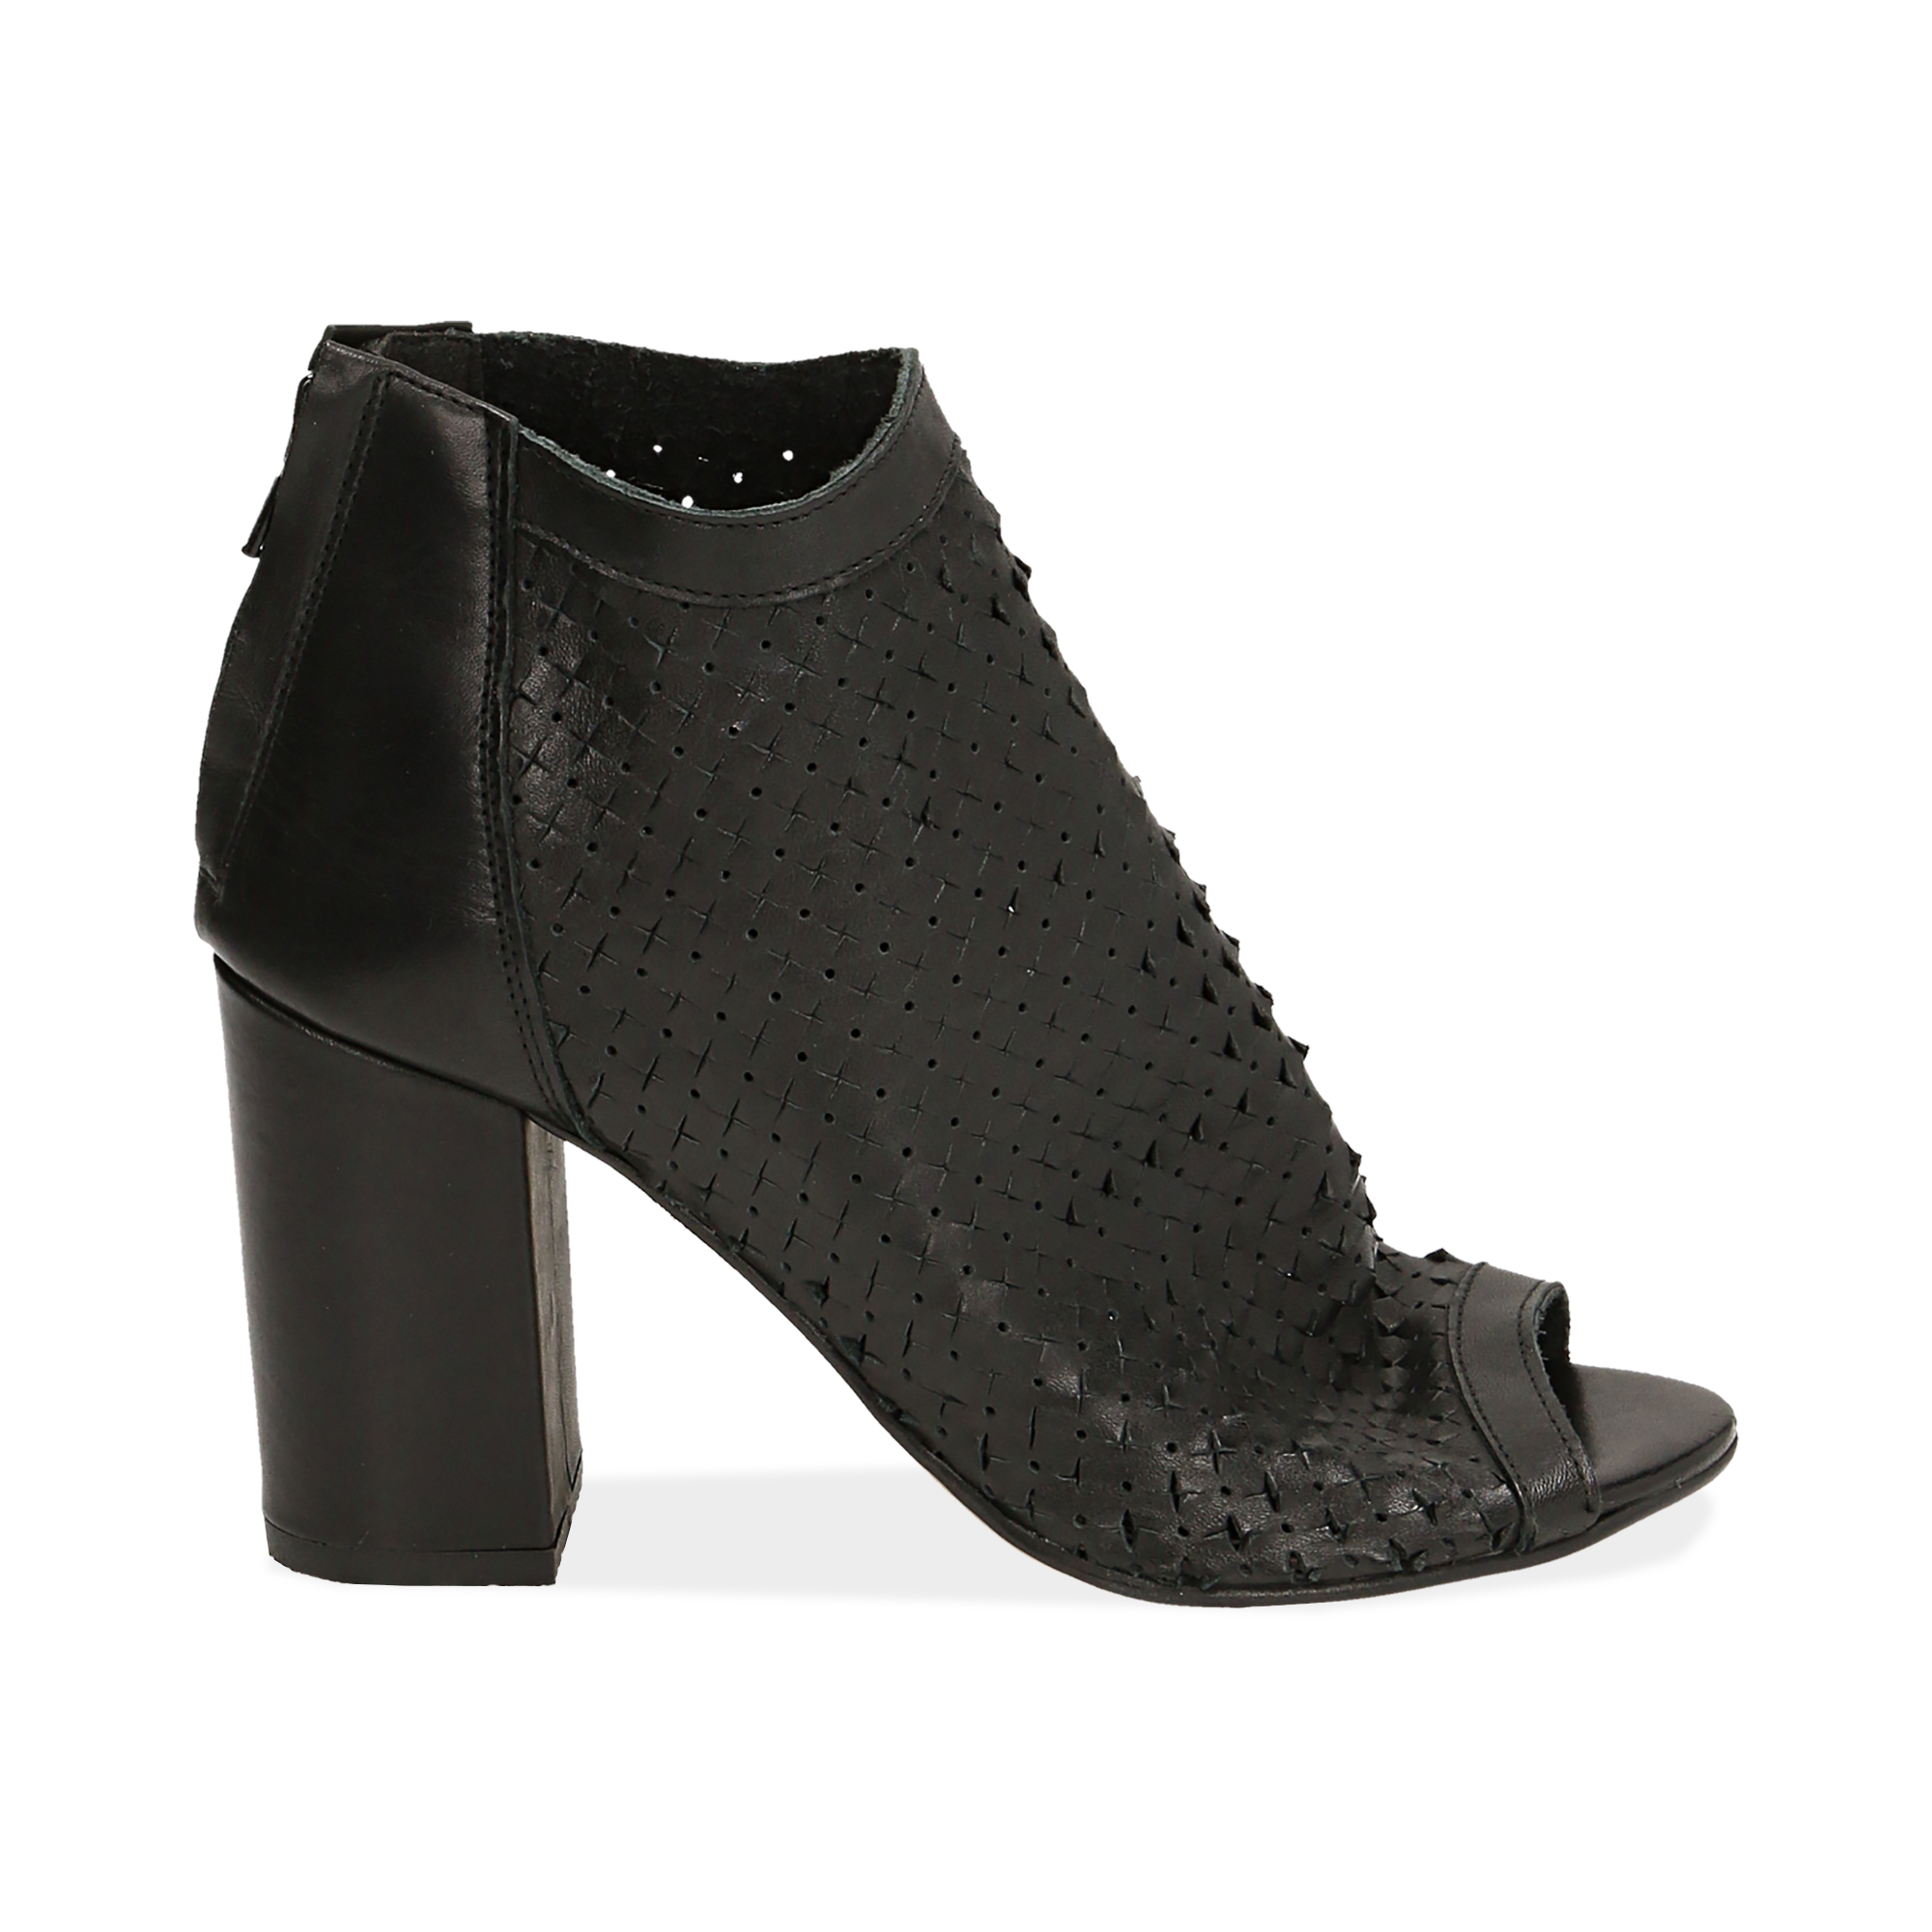 Ankle boots open toe neri in pelle di vitello, tacco 9 cm